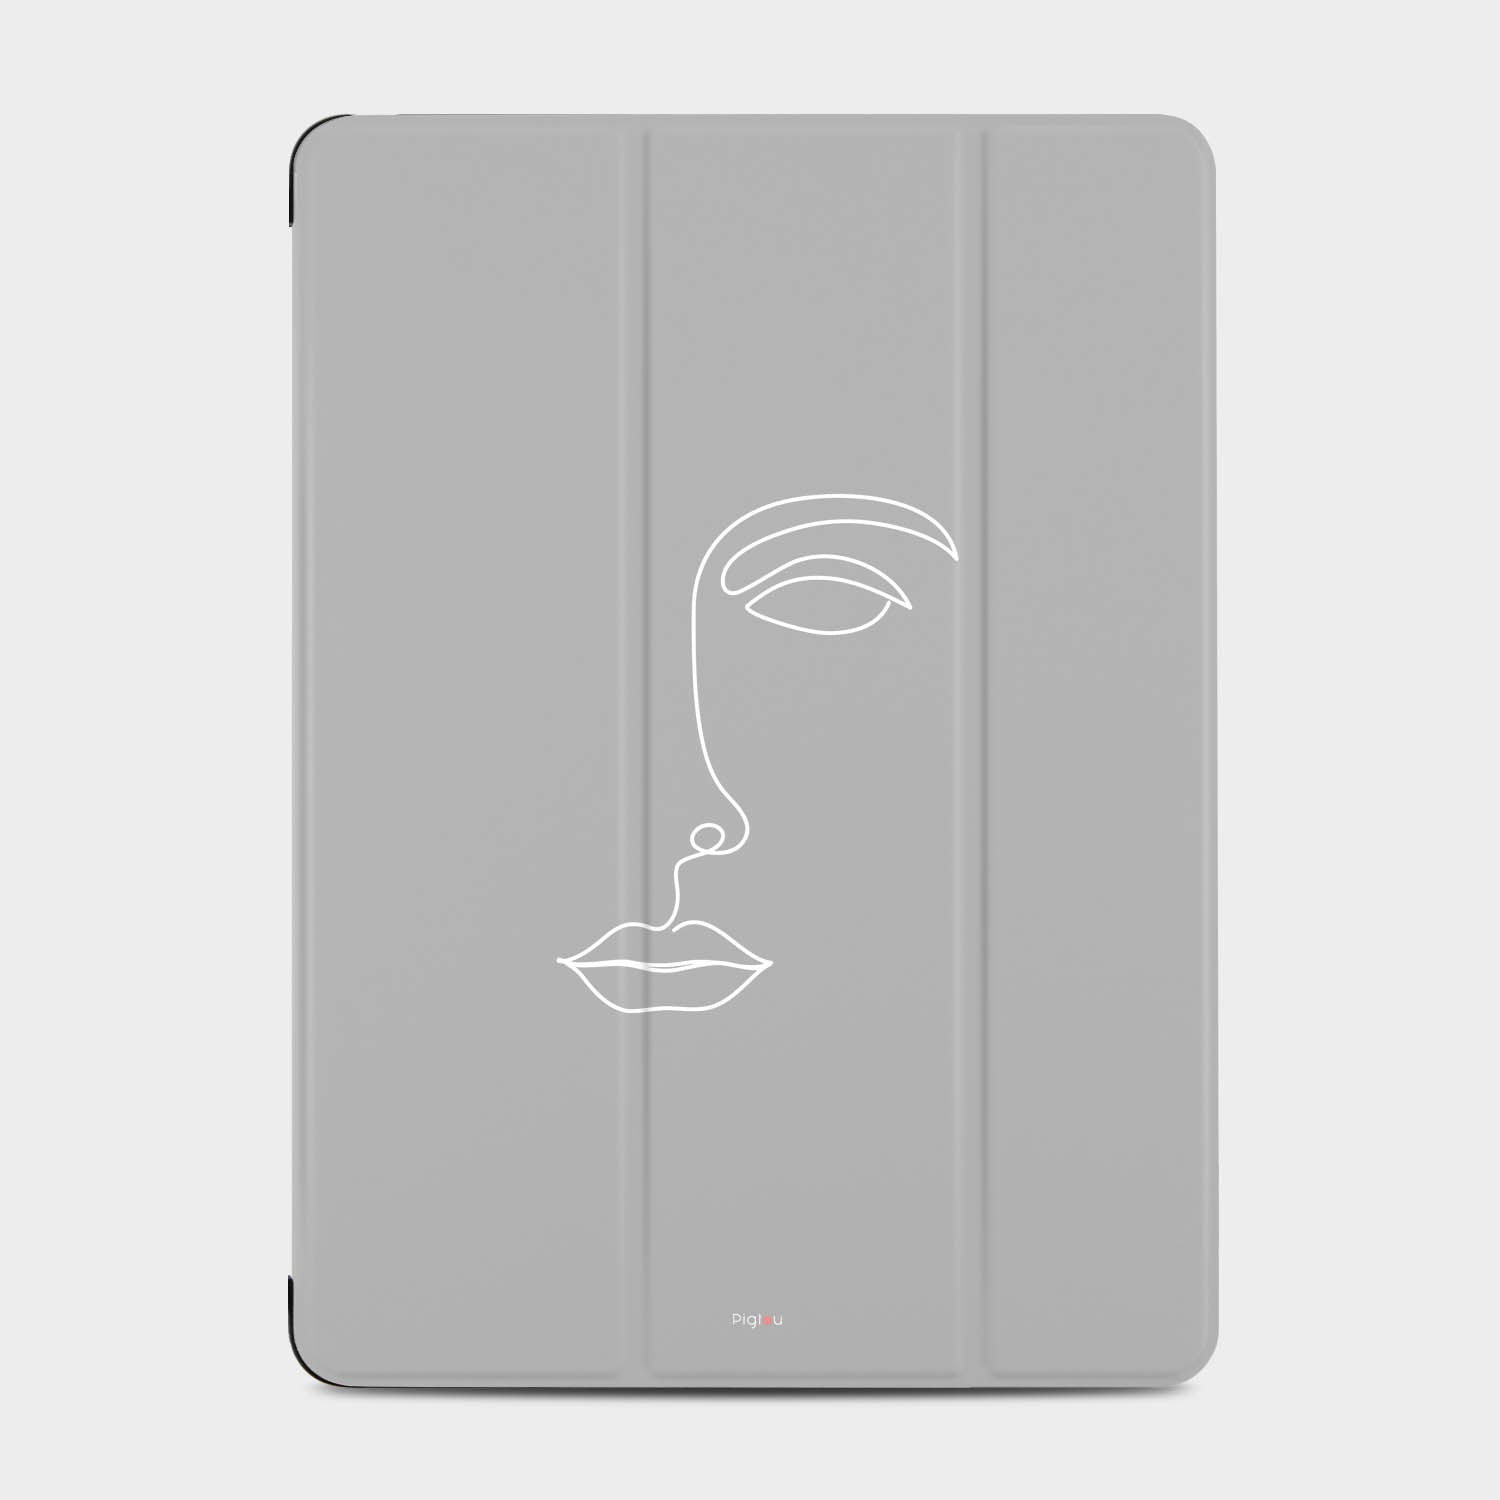 SILHOUETTE FACE iPad Pro 11 Inch cases | Pigtou